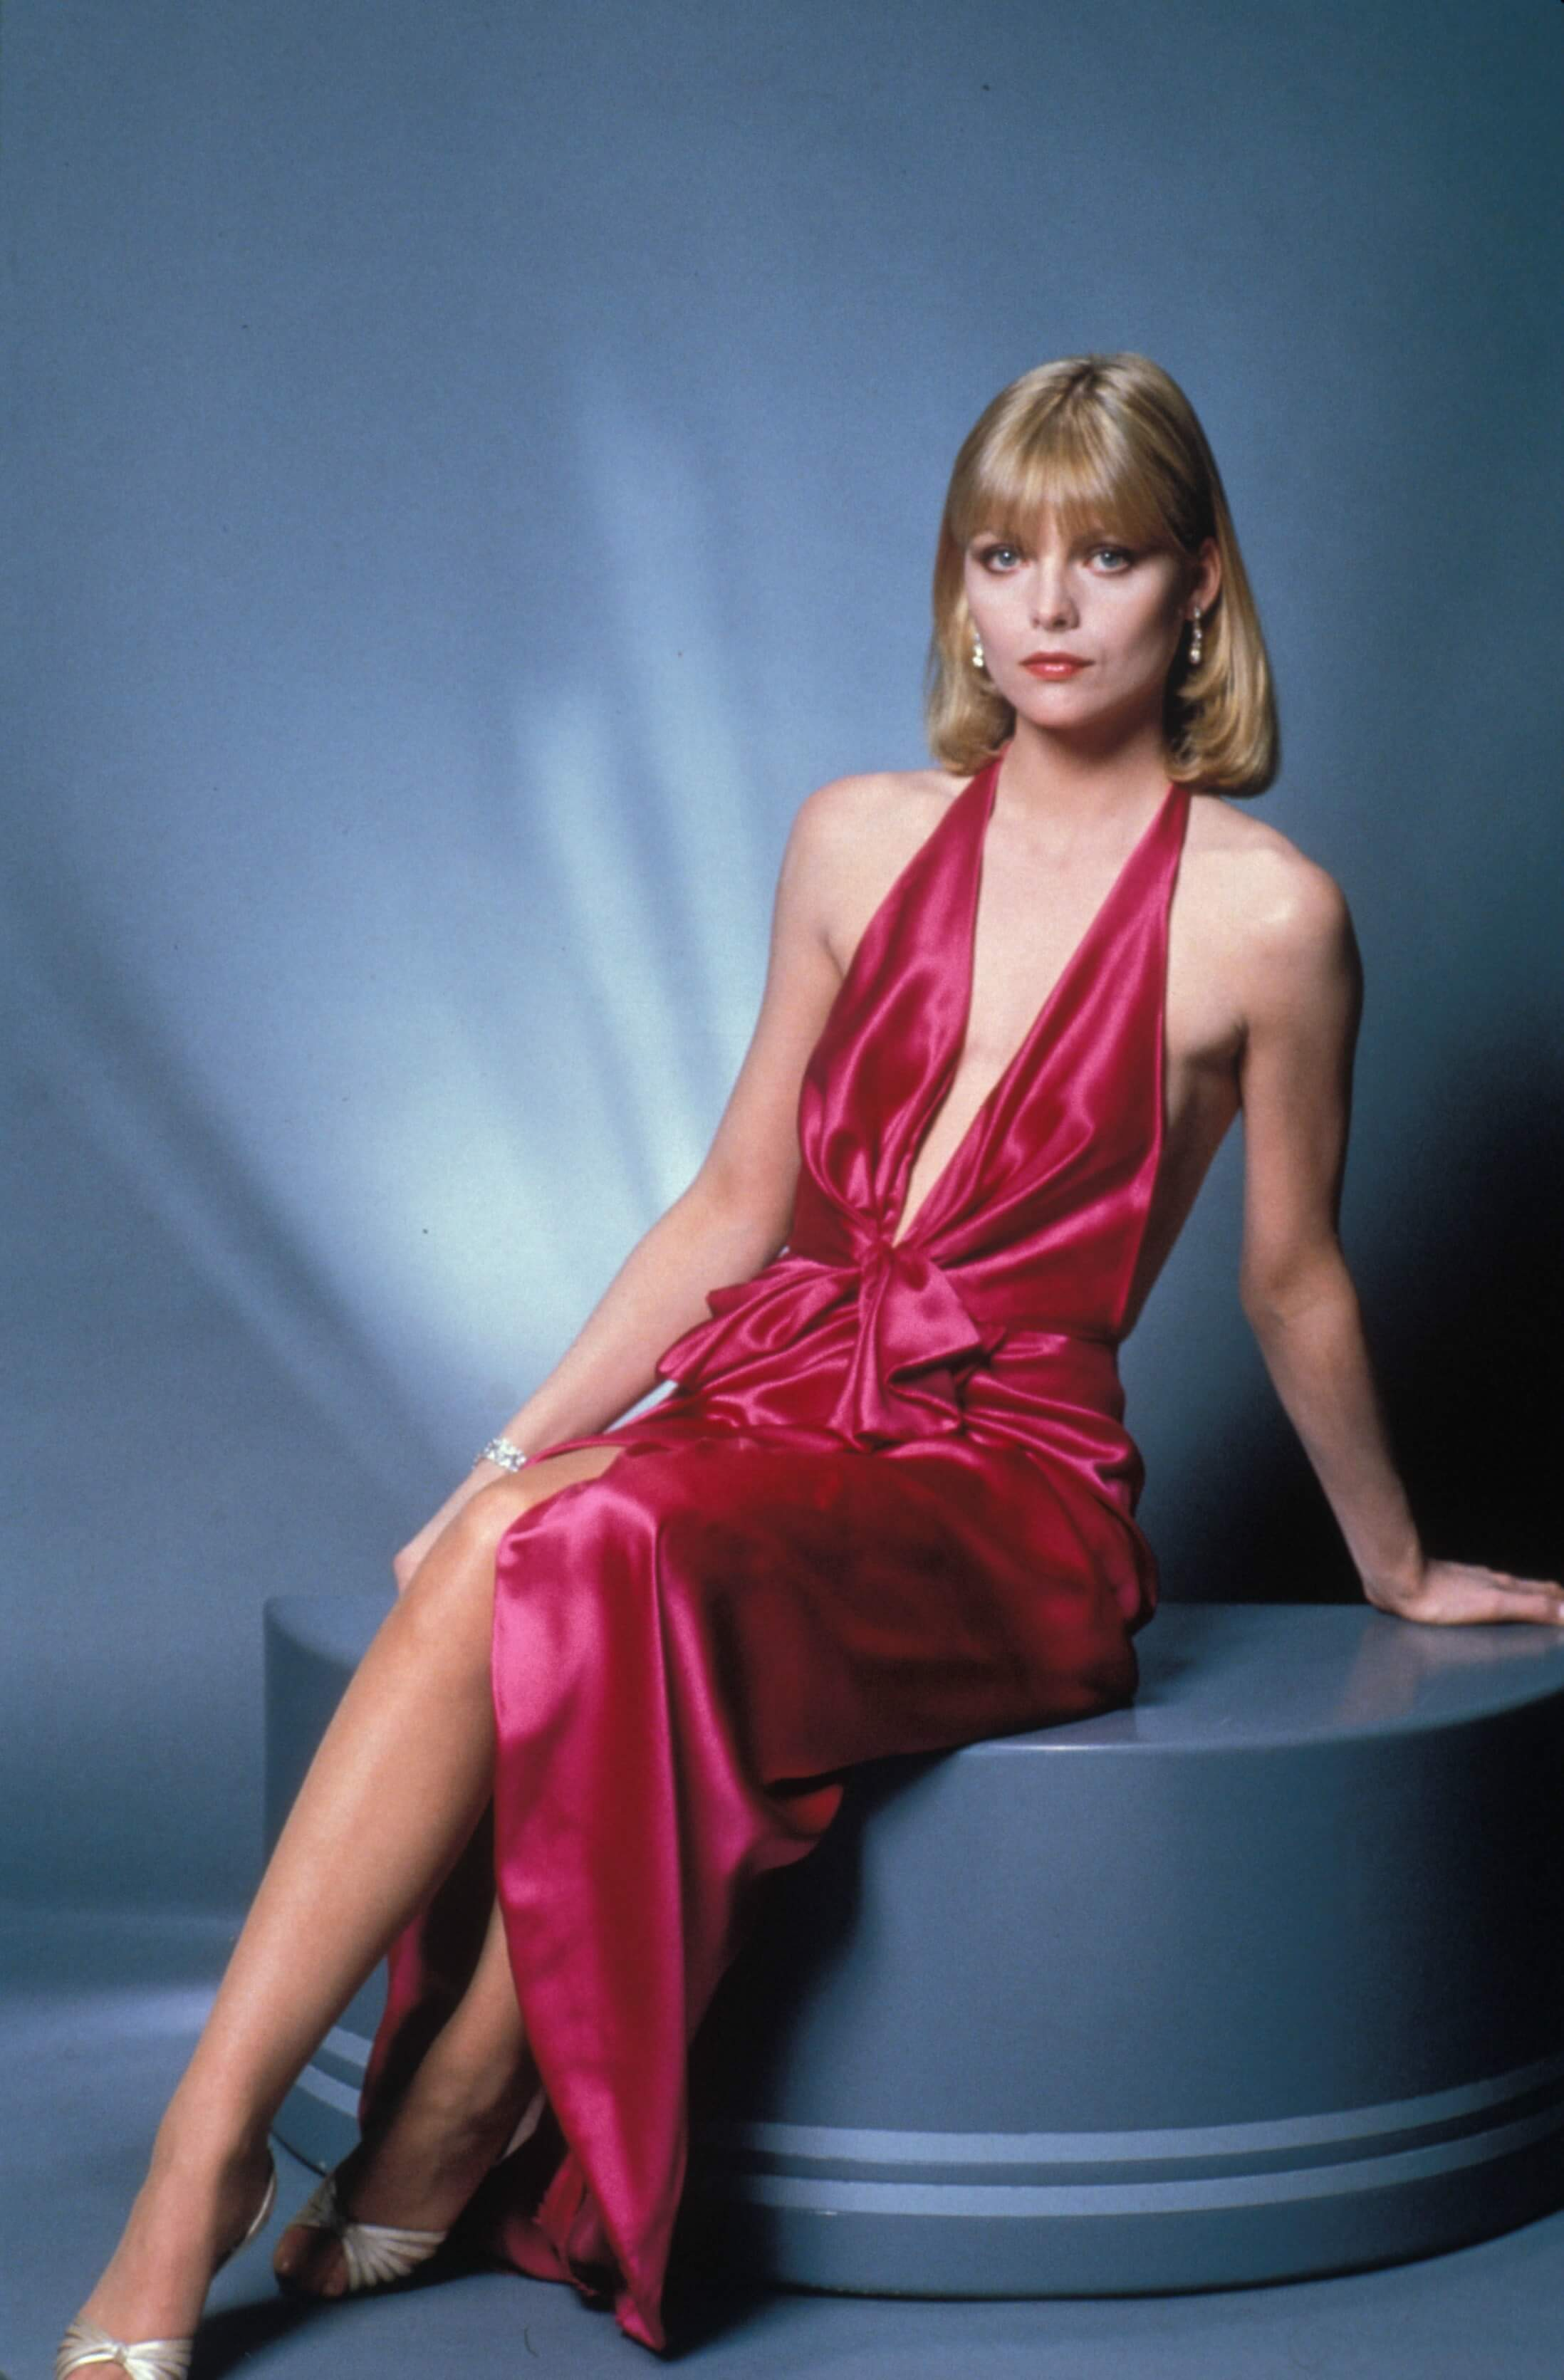 Michelle Pfeiffer awesome pic